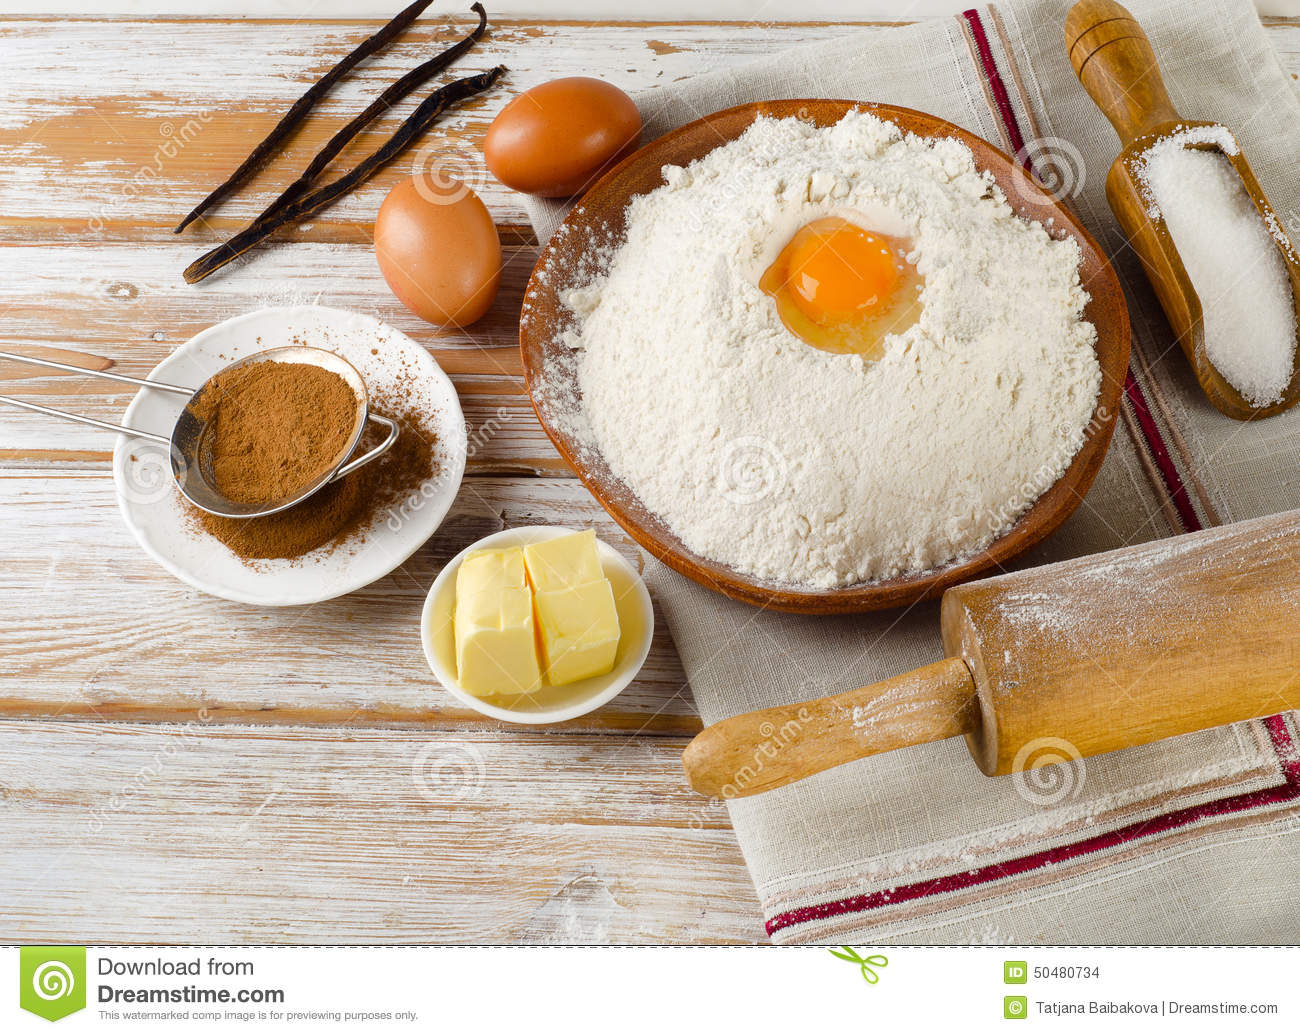 ... , Sugar, Butter On White Wooden Table Stock Photo - Image: 50480734